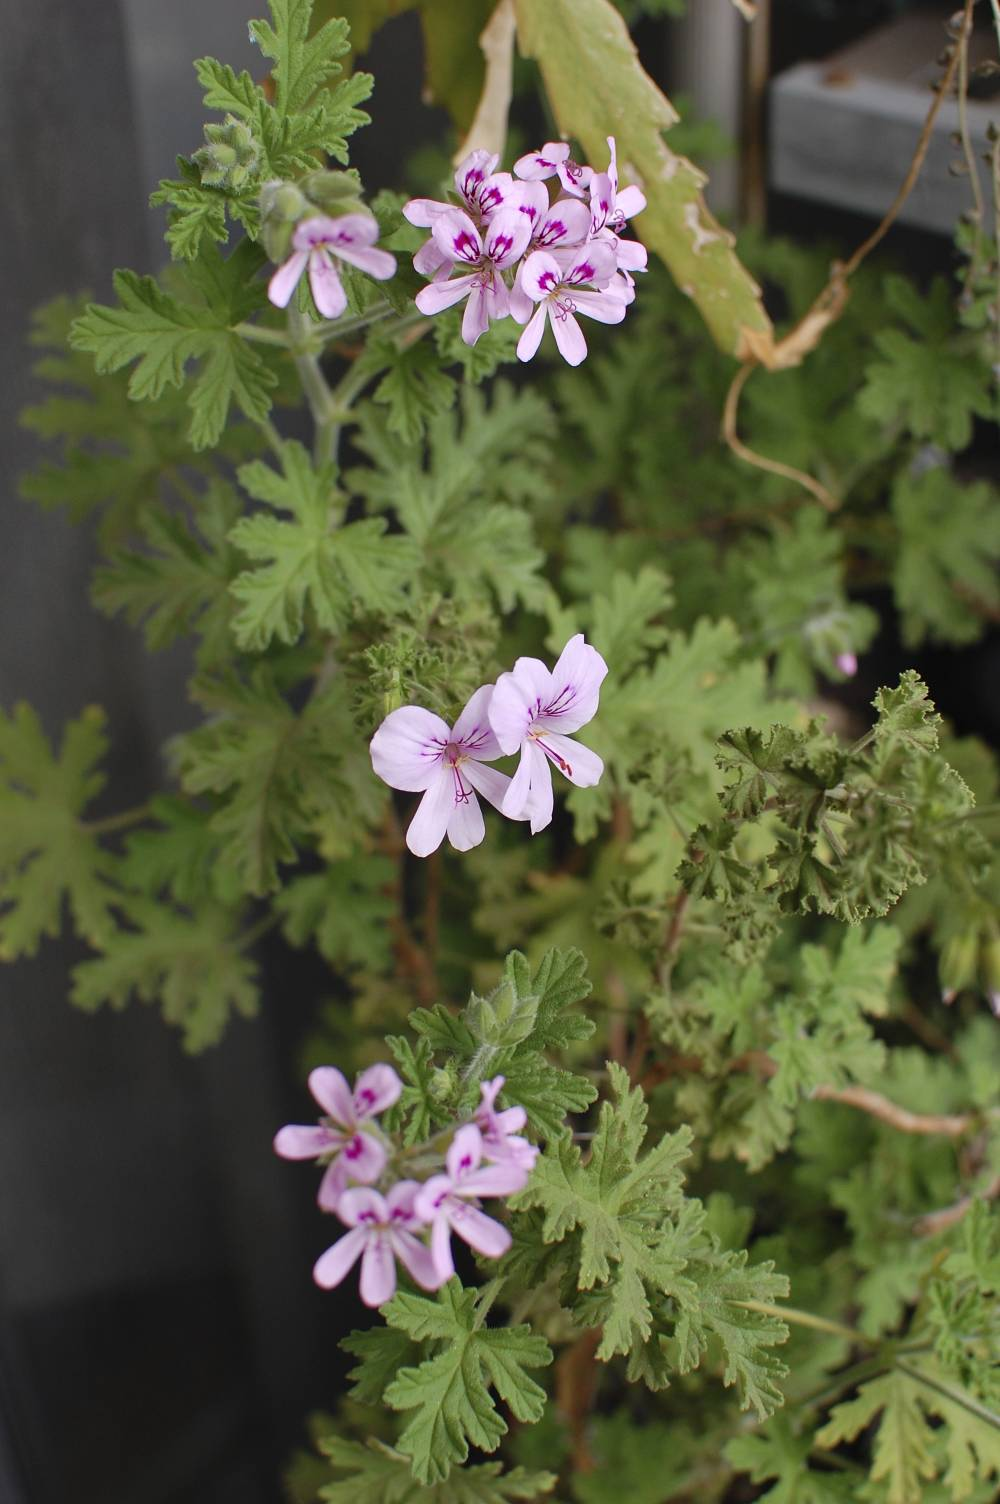 Pelargonium graveolens Images - Useful Tropical Plants